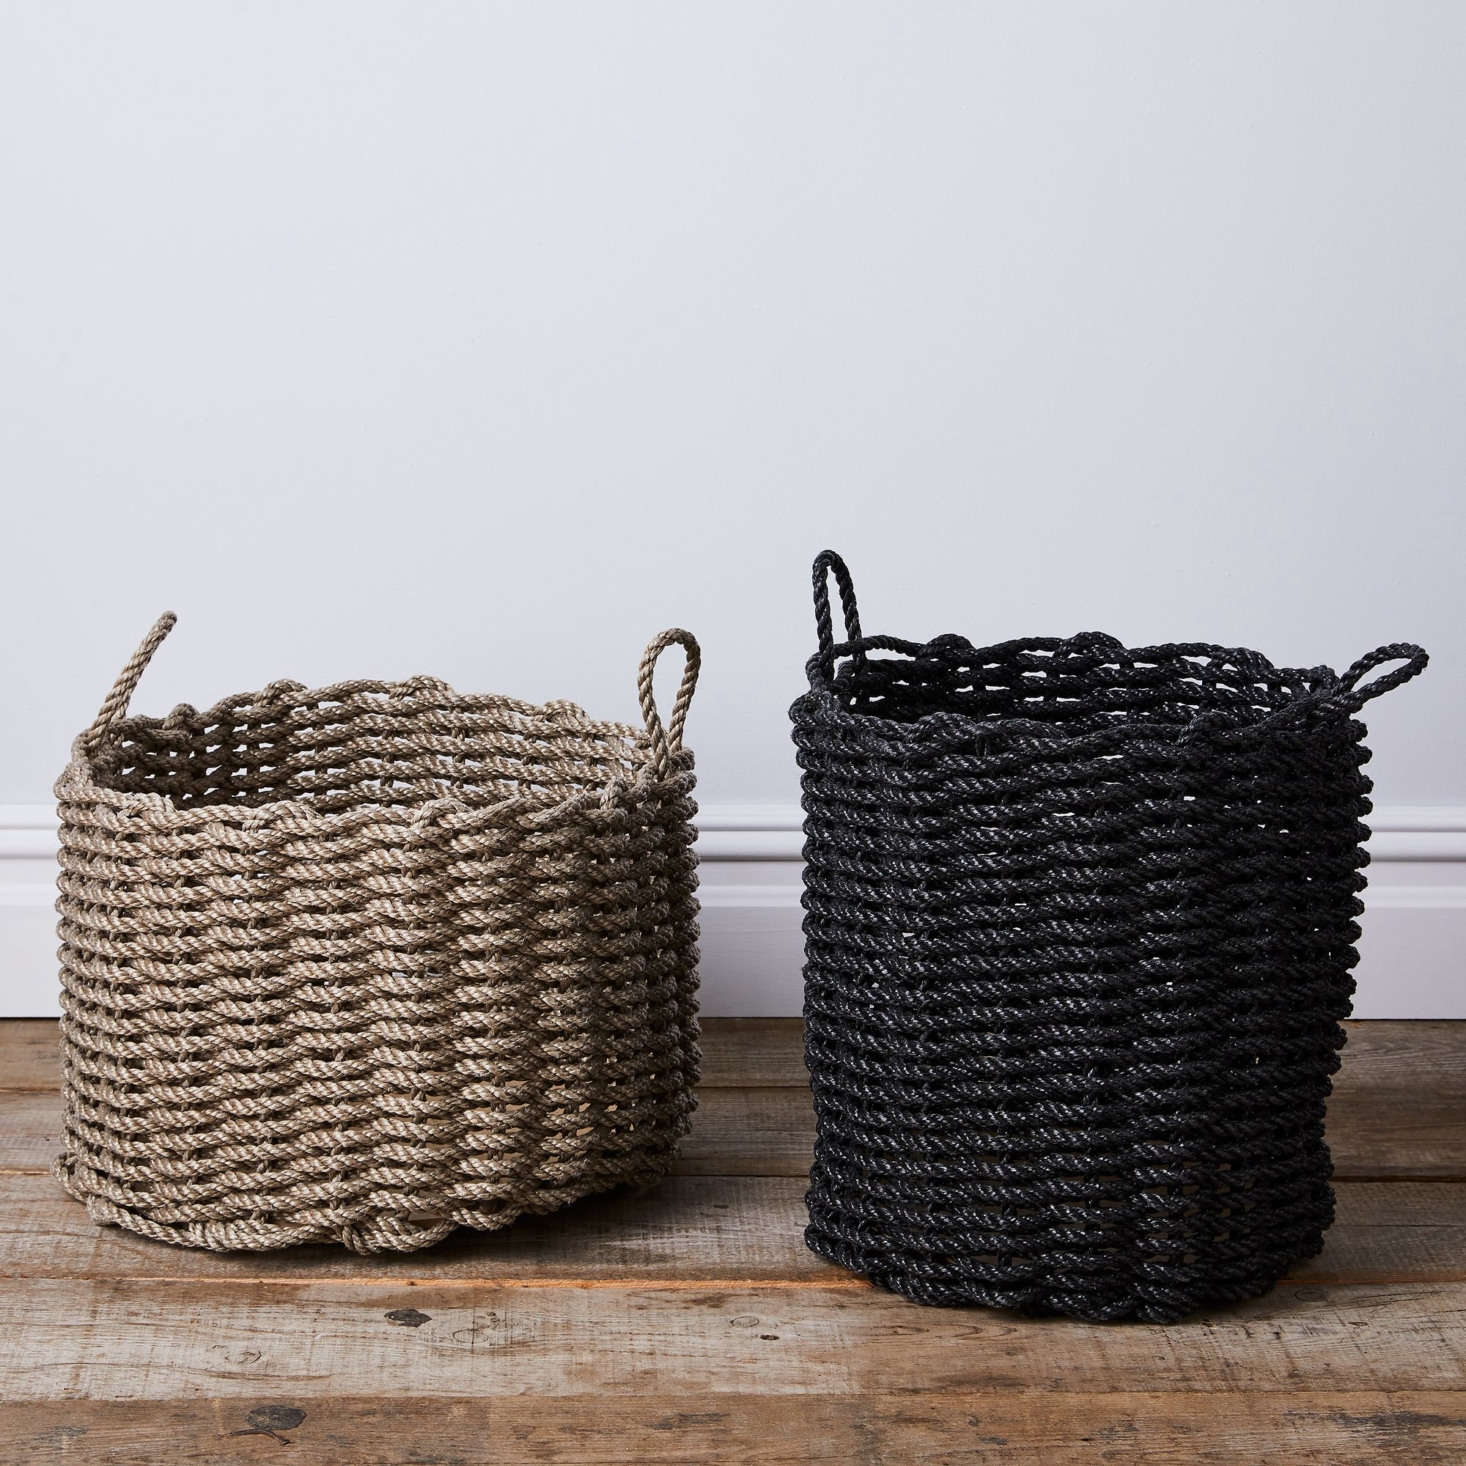 Made in Maine: Rugged Baskets and Doormats Woven From Nautical Rope